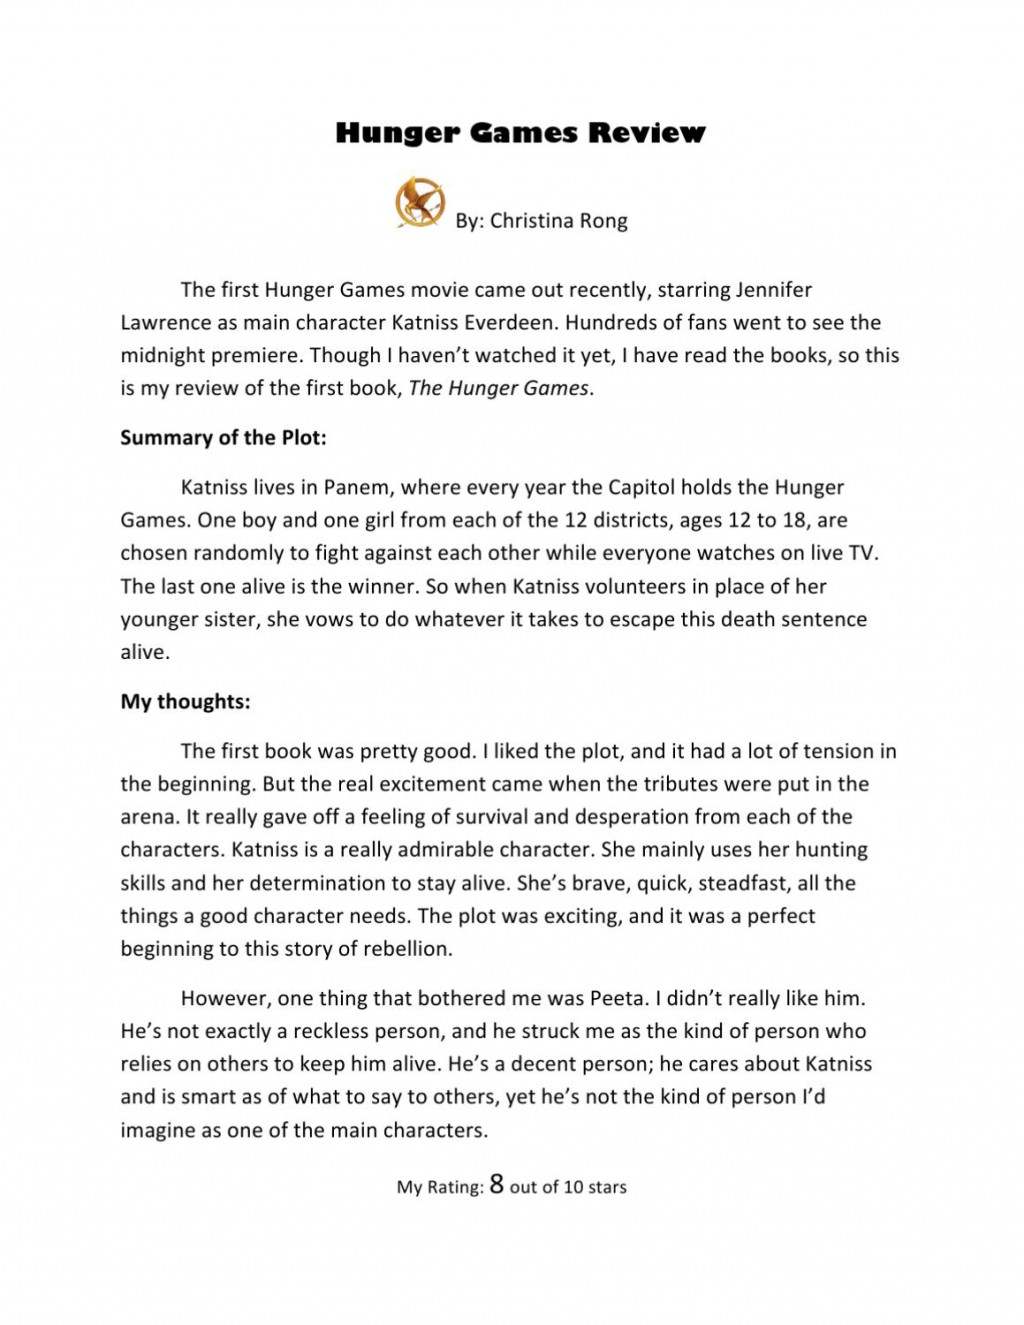 015 Essay Example Page 1 The Hunger Games Book Imposing Review Large